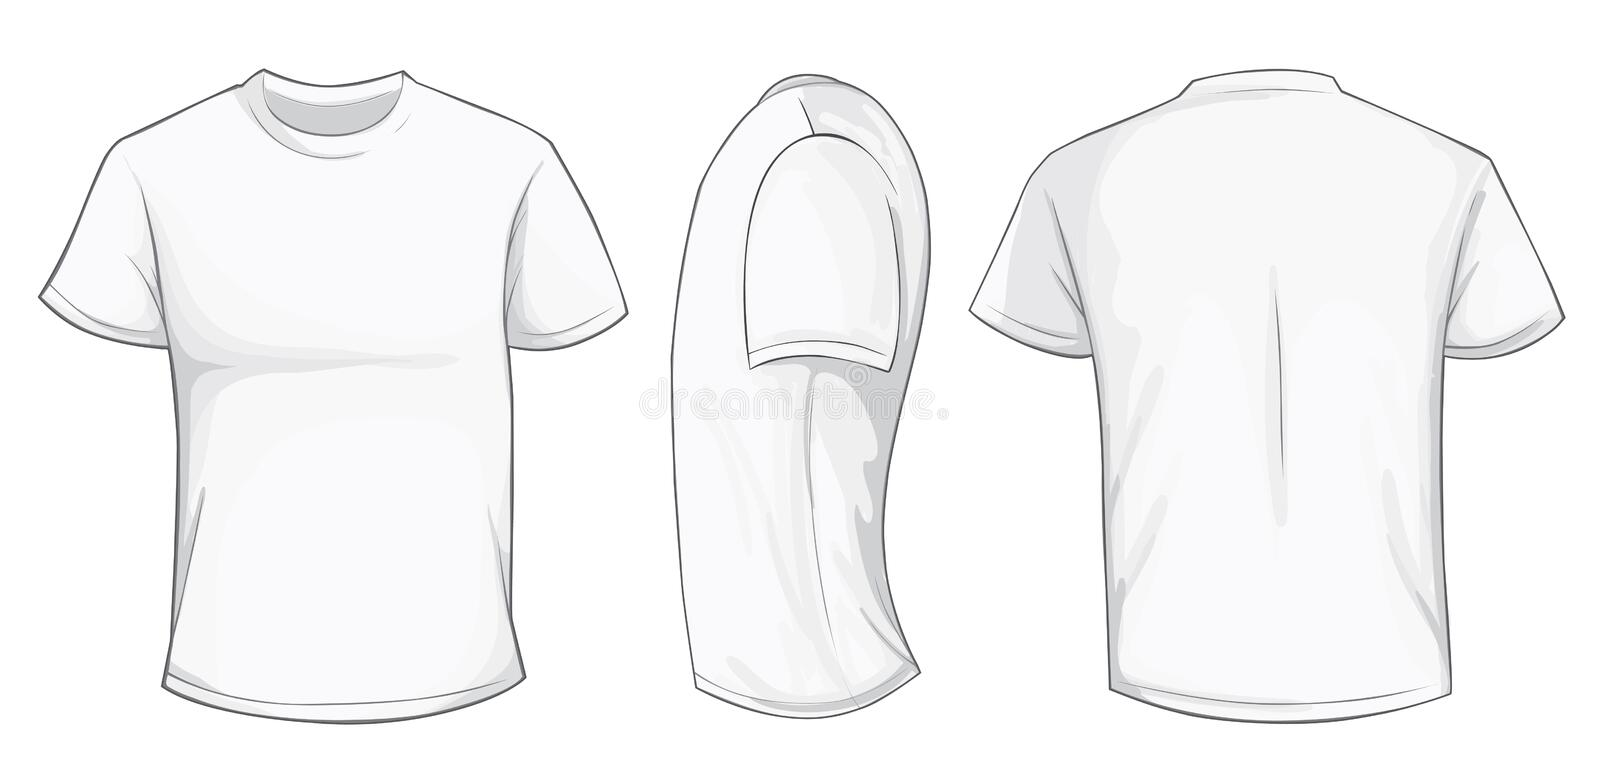 t shirt template vector - Vatoz.atozdevelopment.co